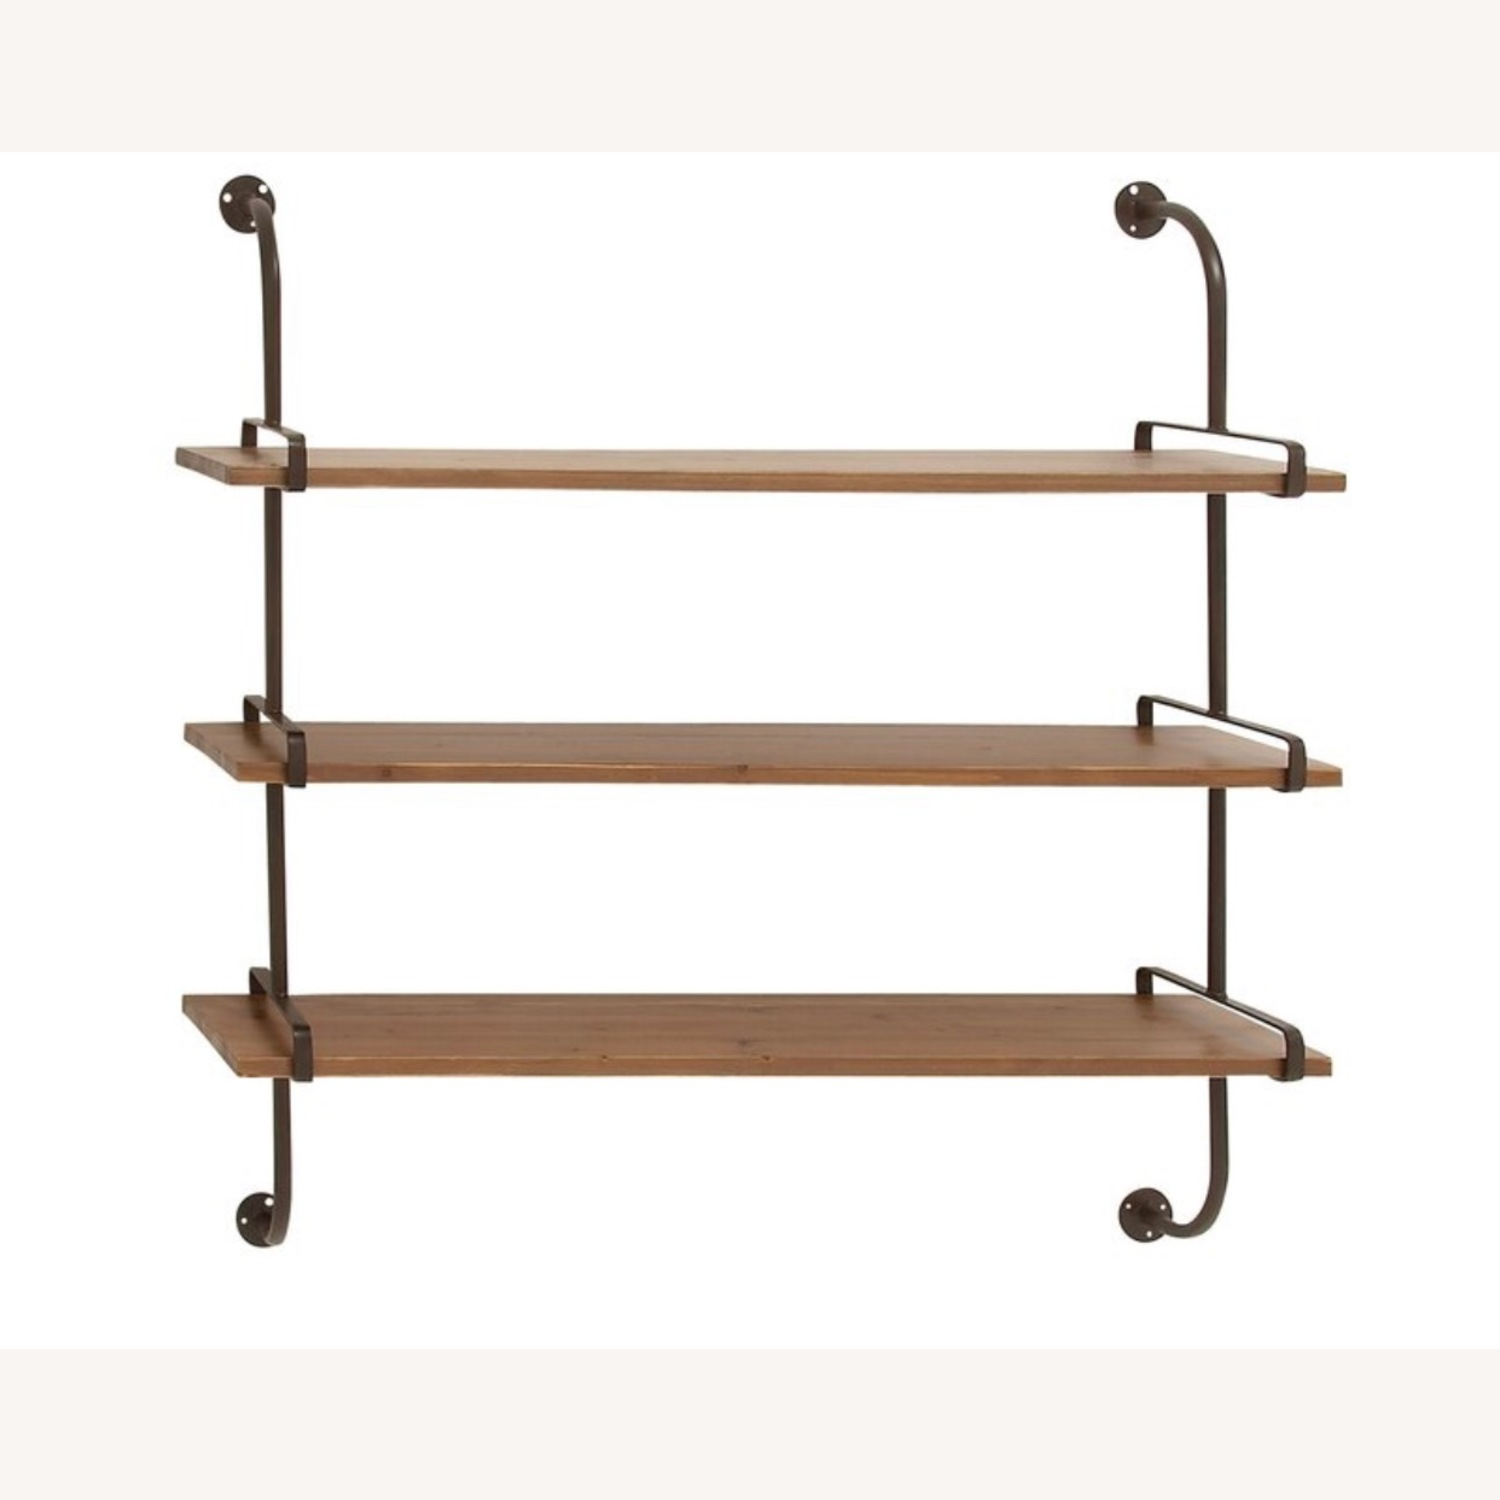 Wayfair Rustic Wood and Metal Wall Shelf - image-1